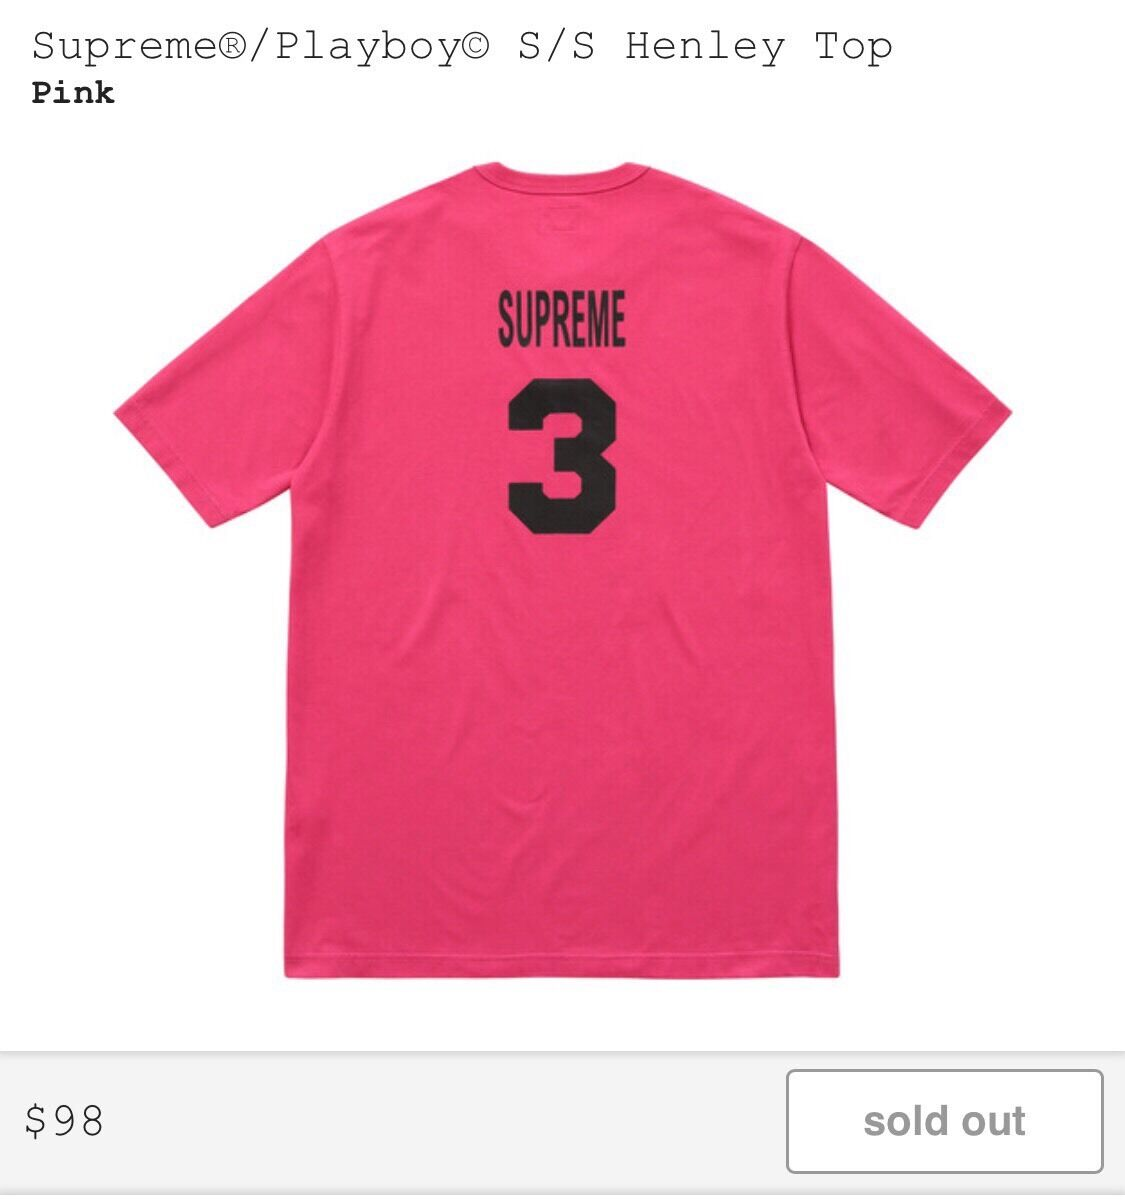 SUPREME PLAYBOY S S Henley Top Pink Size MEDIUM   CONFIRMED